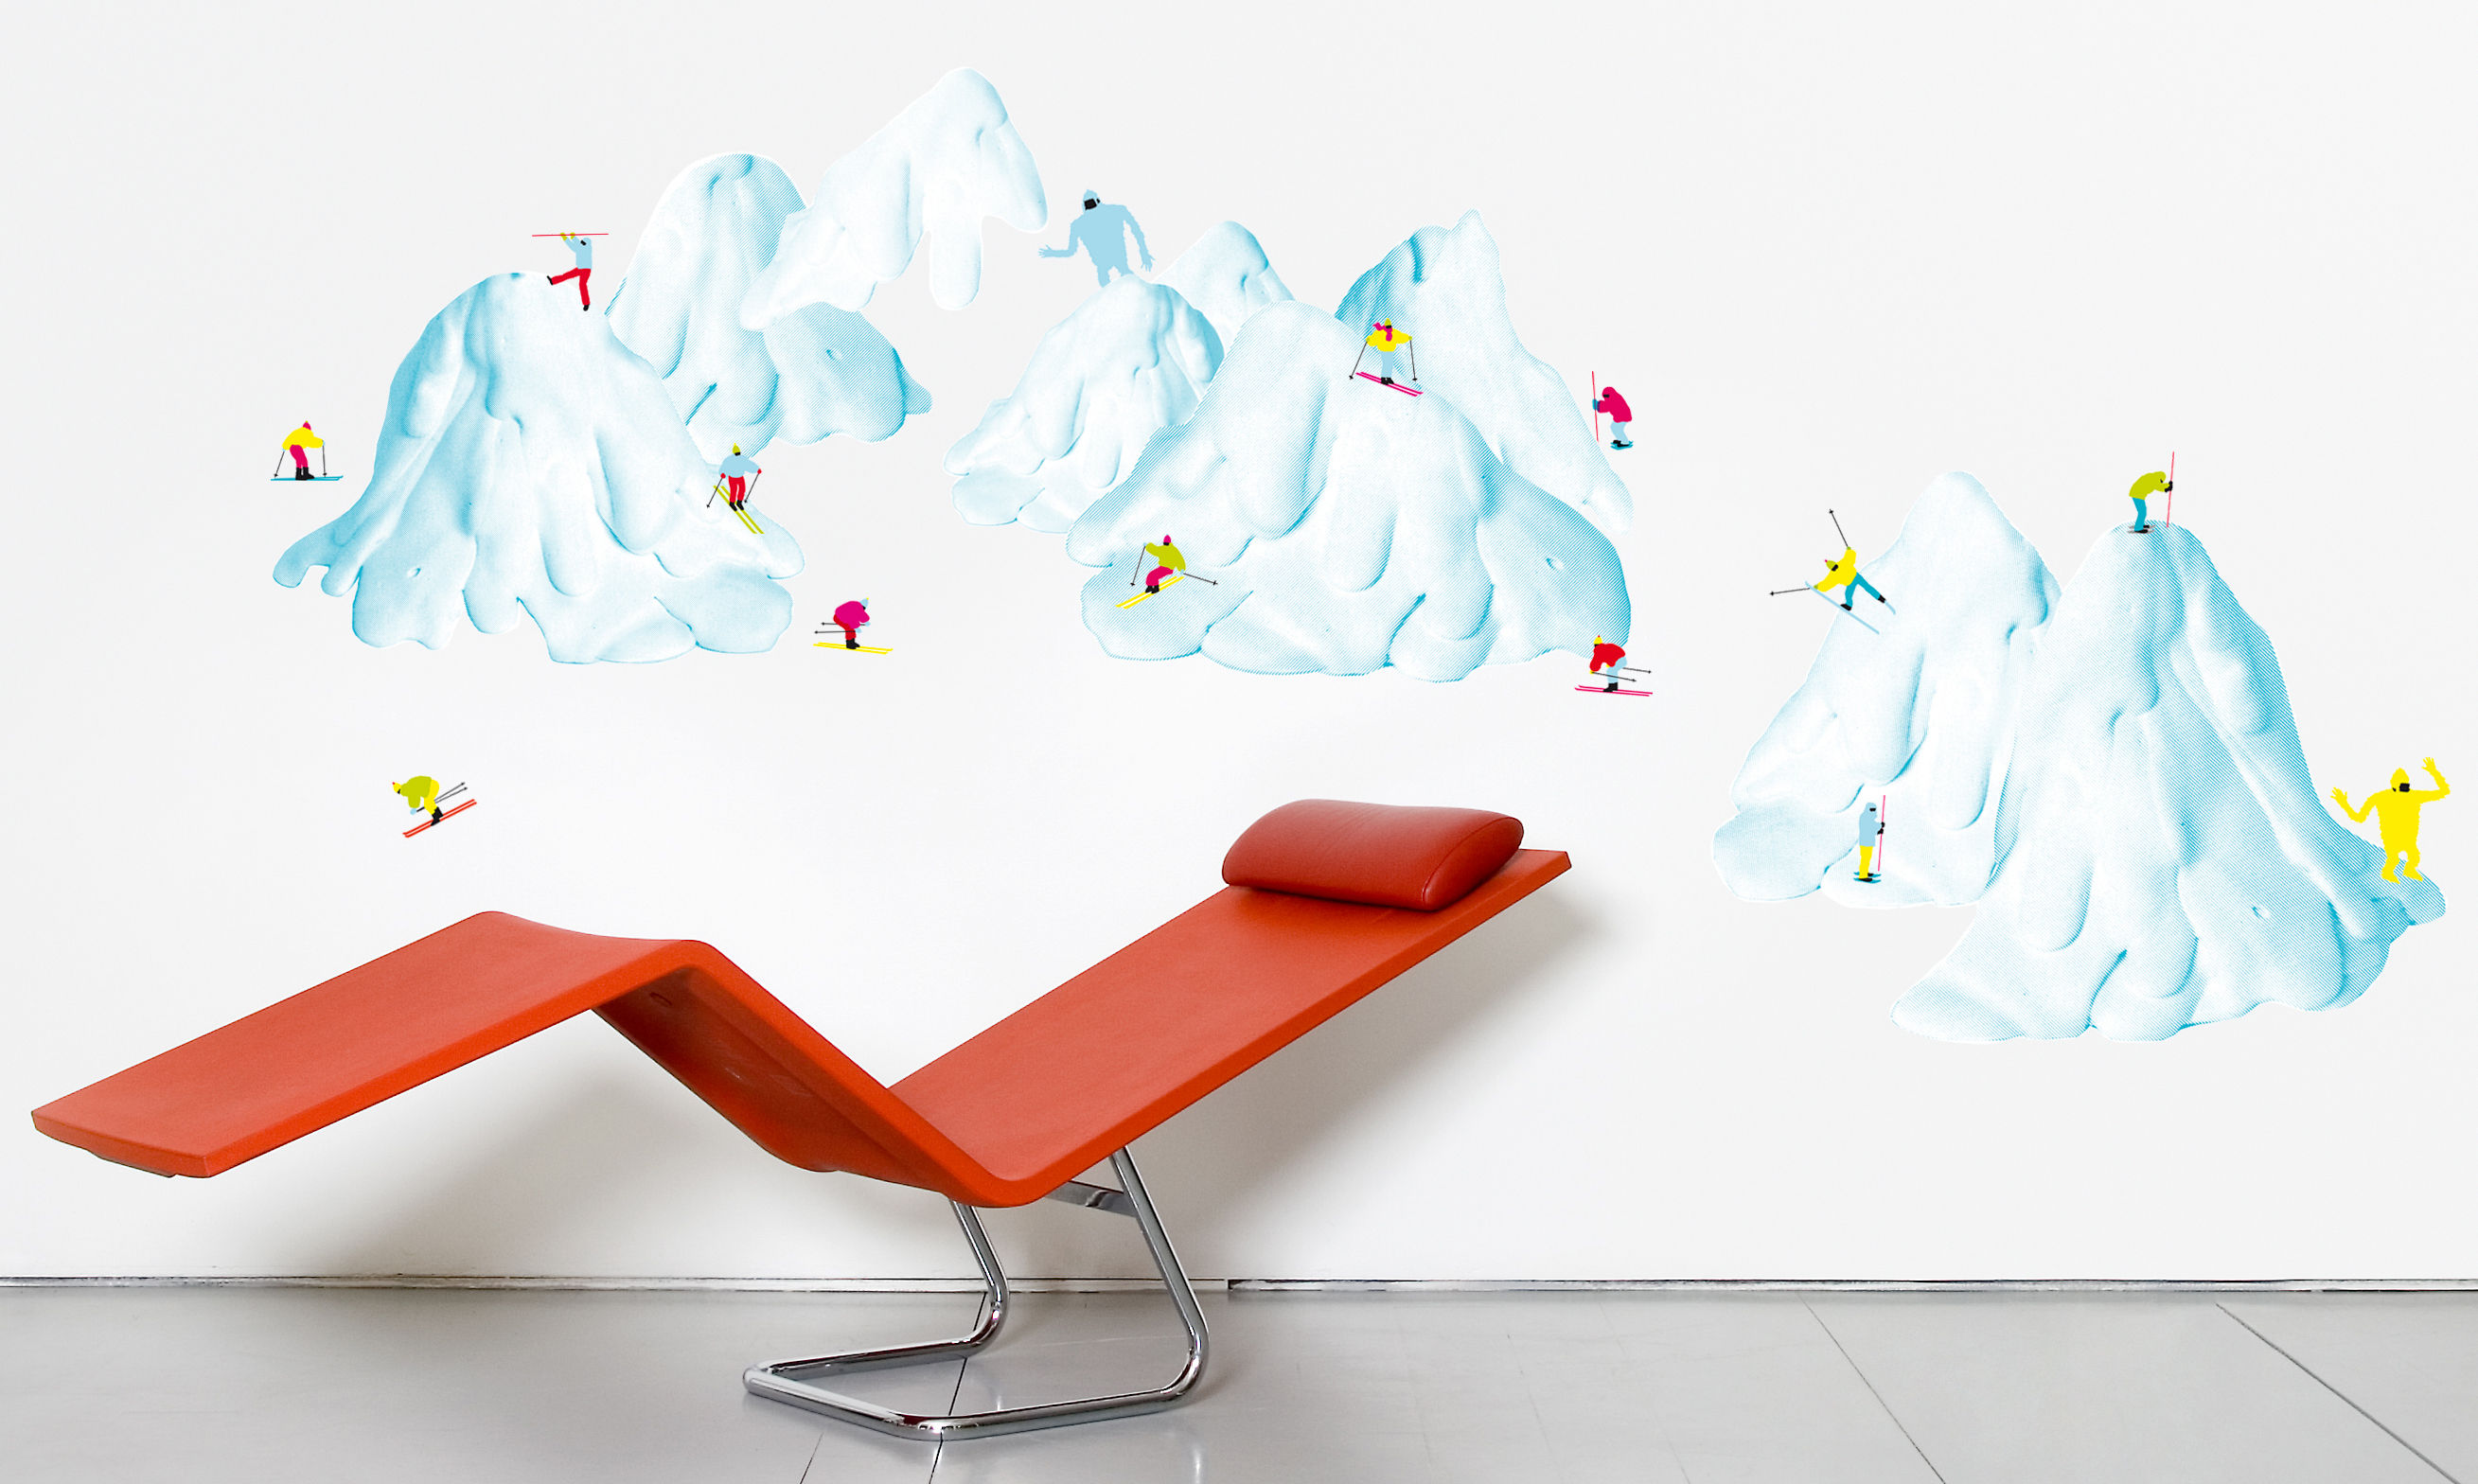 Decoration - Wallpaper & Wall Stickers - Slalom 2 Sticker by Domestic - Multicolored - Vinal